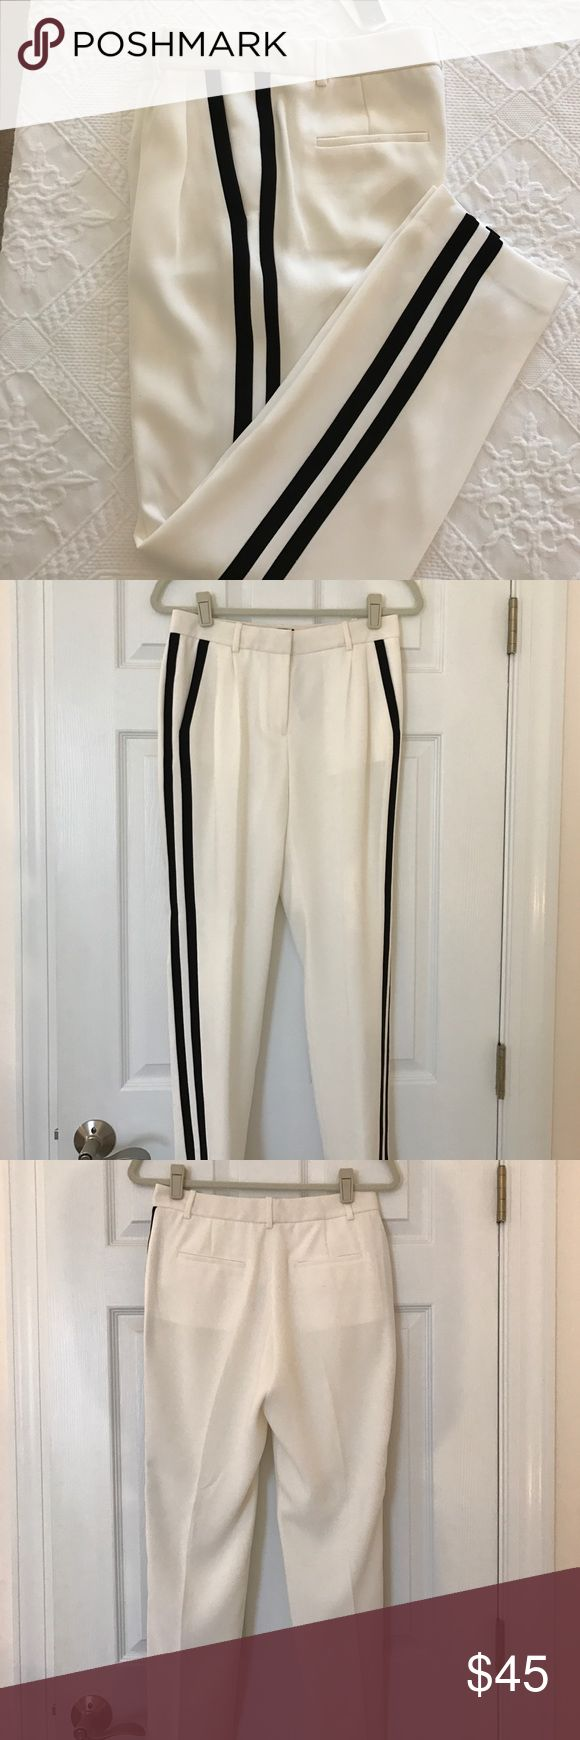 "JCrew Collection Tuxedo Pants in Size 2 These are a pair of JCrew cream colored pants with two black tuxedo stripes down the sides. They have a straight fit with a hint of drape and a straight leg. They have two front pockets and can be dressy or sporty. The inseam is 27"" and they are made of 100% polyester and lined. They are new with the tags. J. Crew Pants"